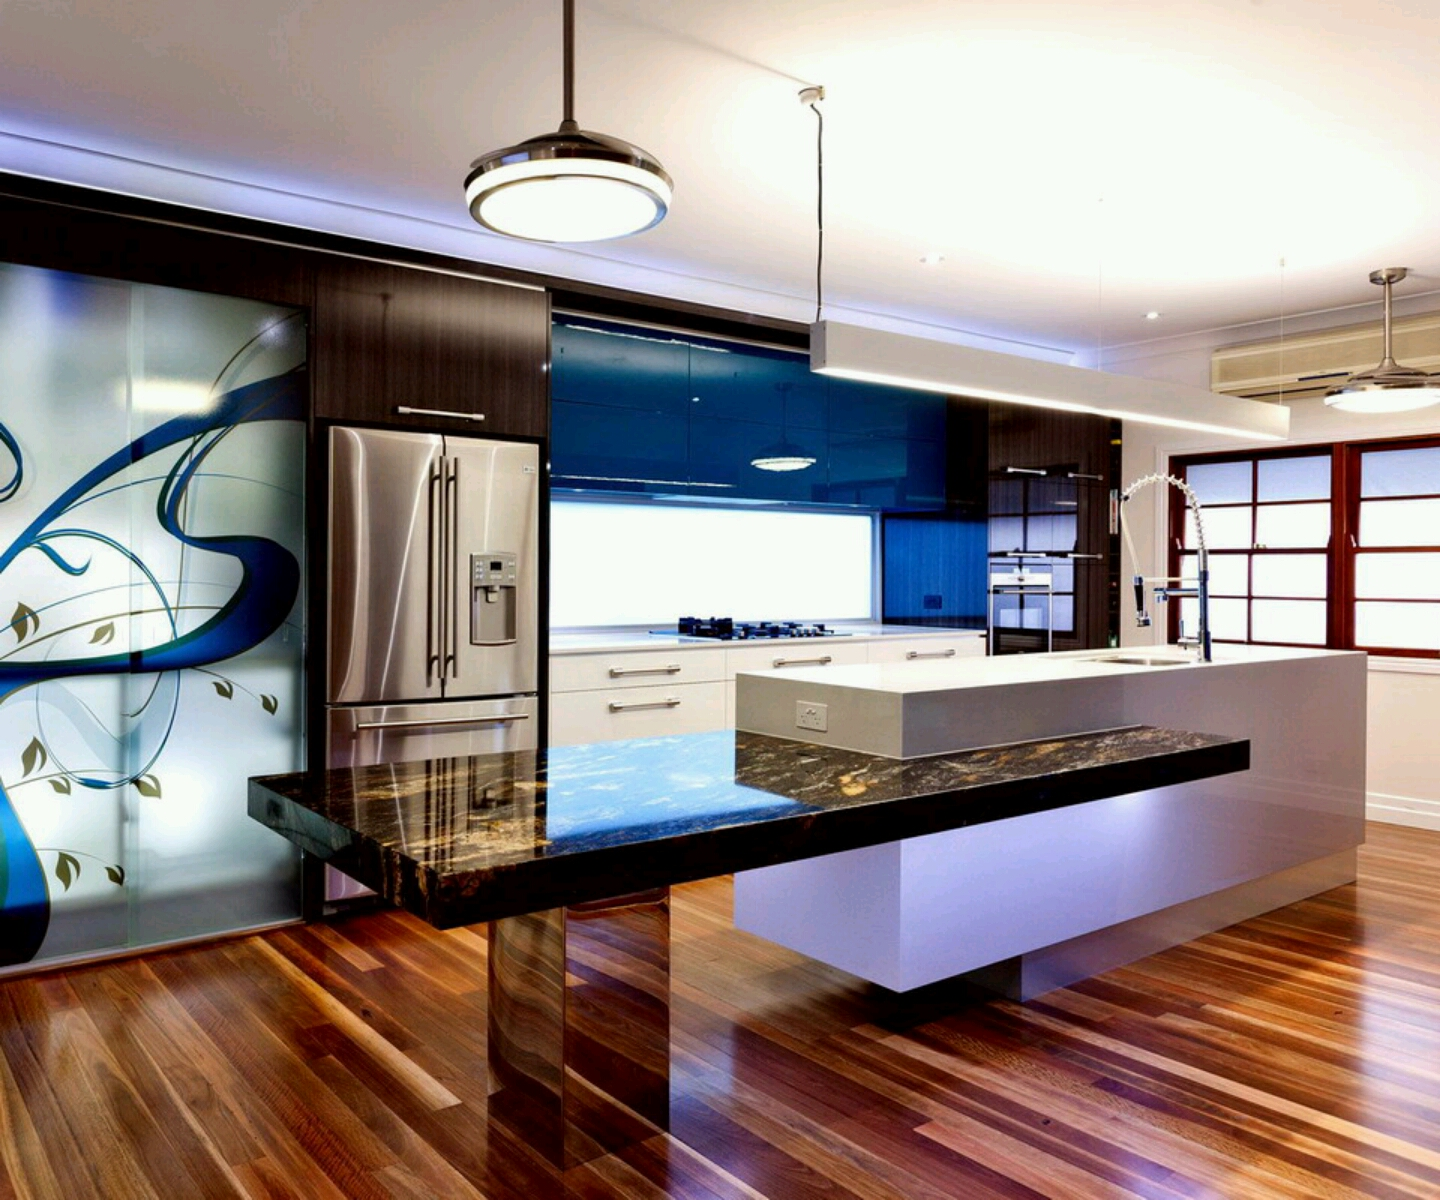 Modern kitchen designs 2013 interior decorating accessories for Kitchen decorating ideas photos